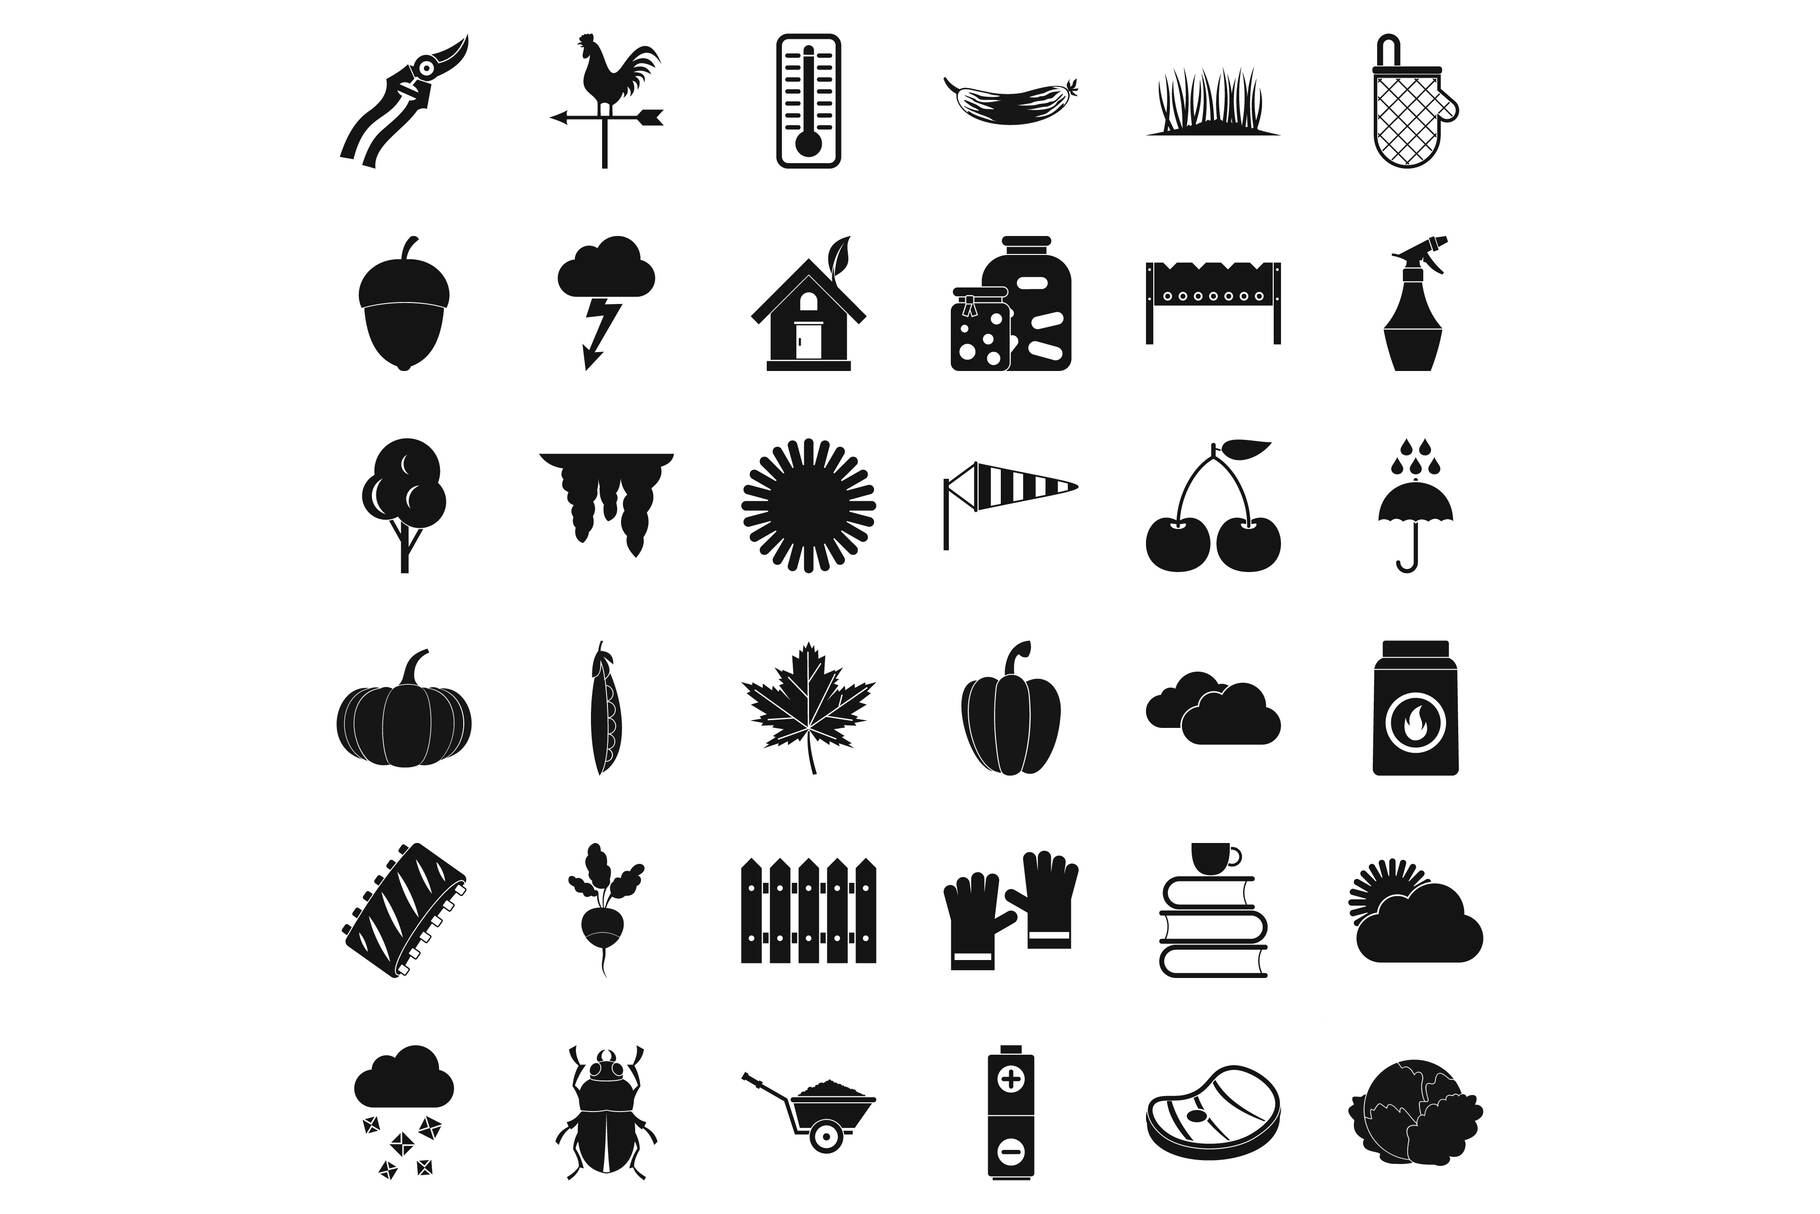 Diet vegetable icons set, simple style example image 1